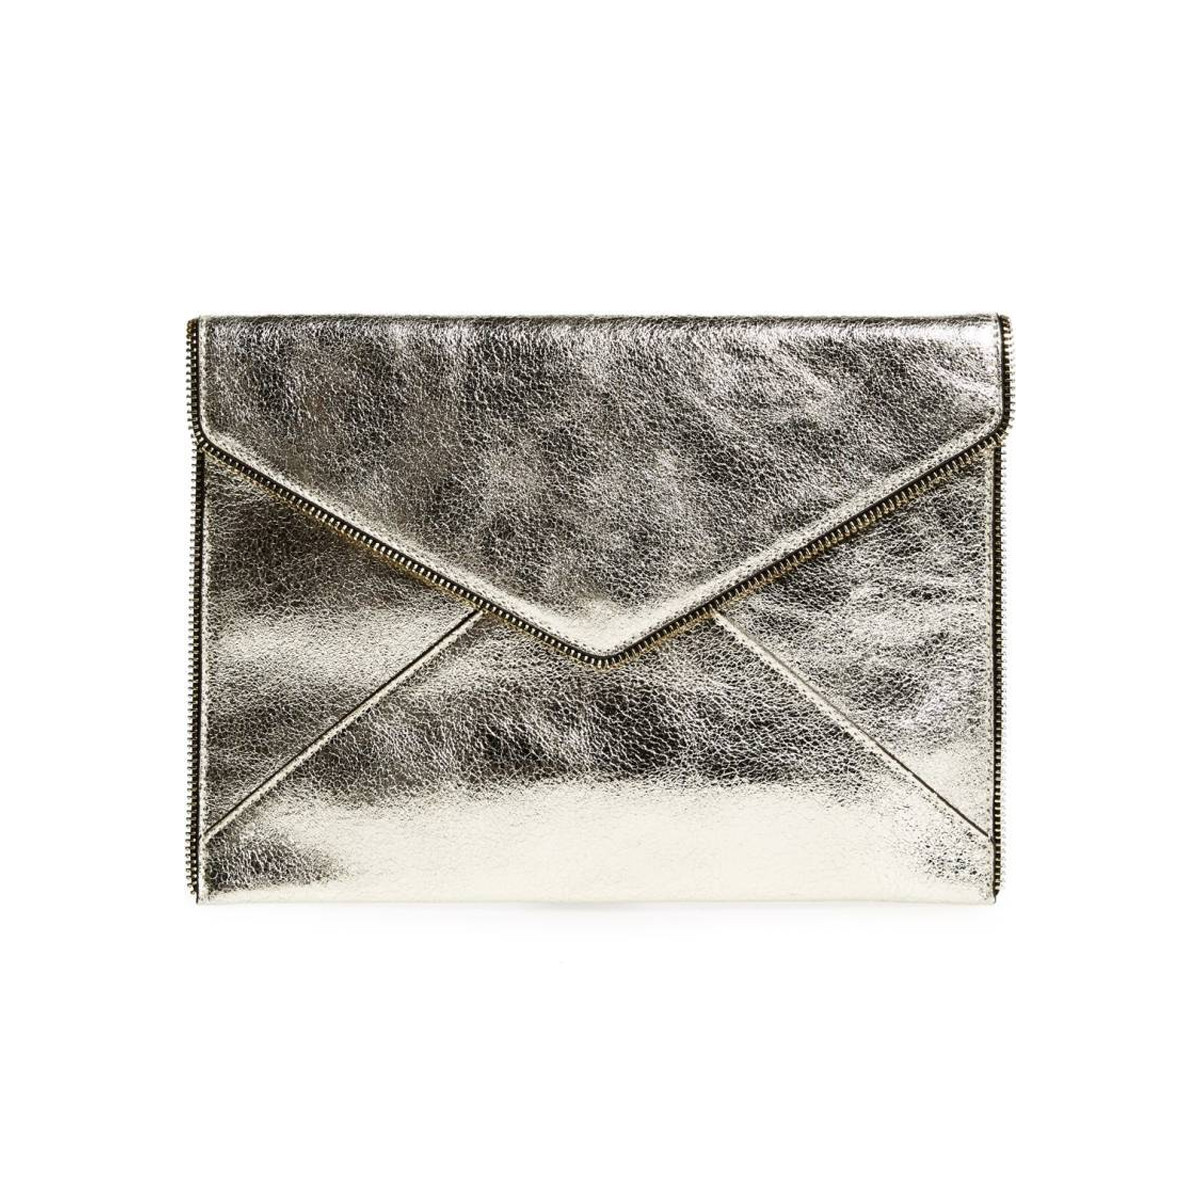 Chic and sleek metallic clutch with envelope design photo